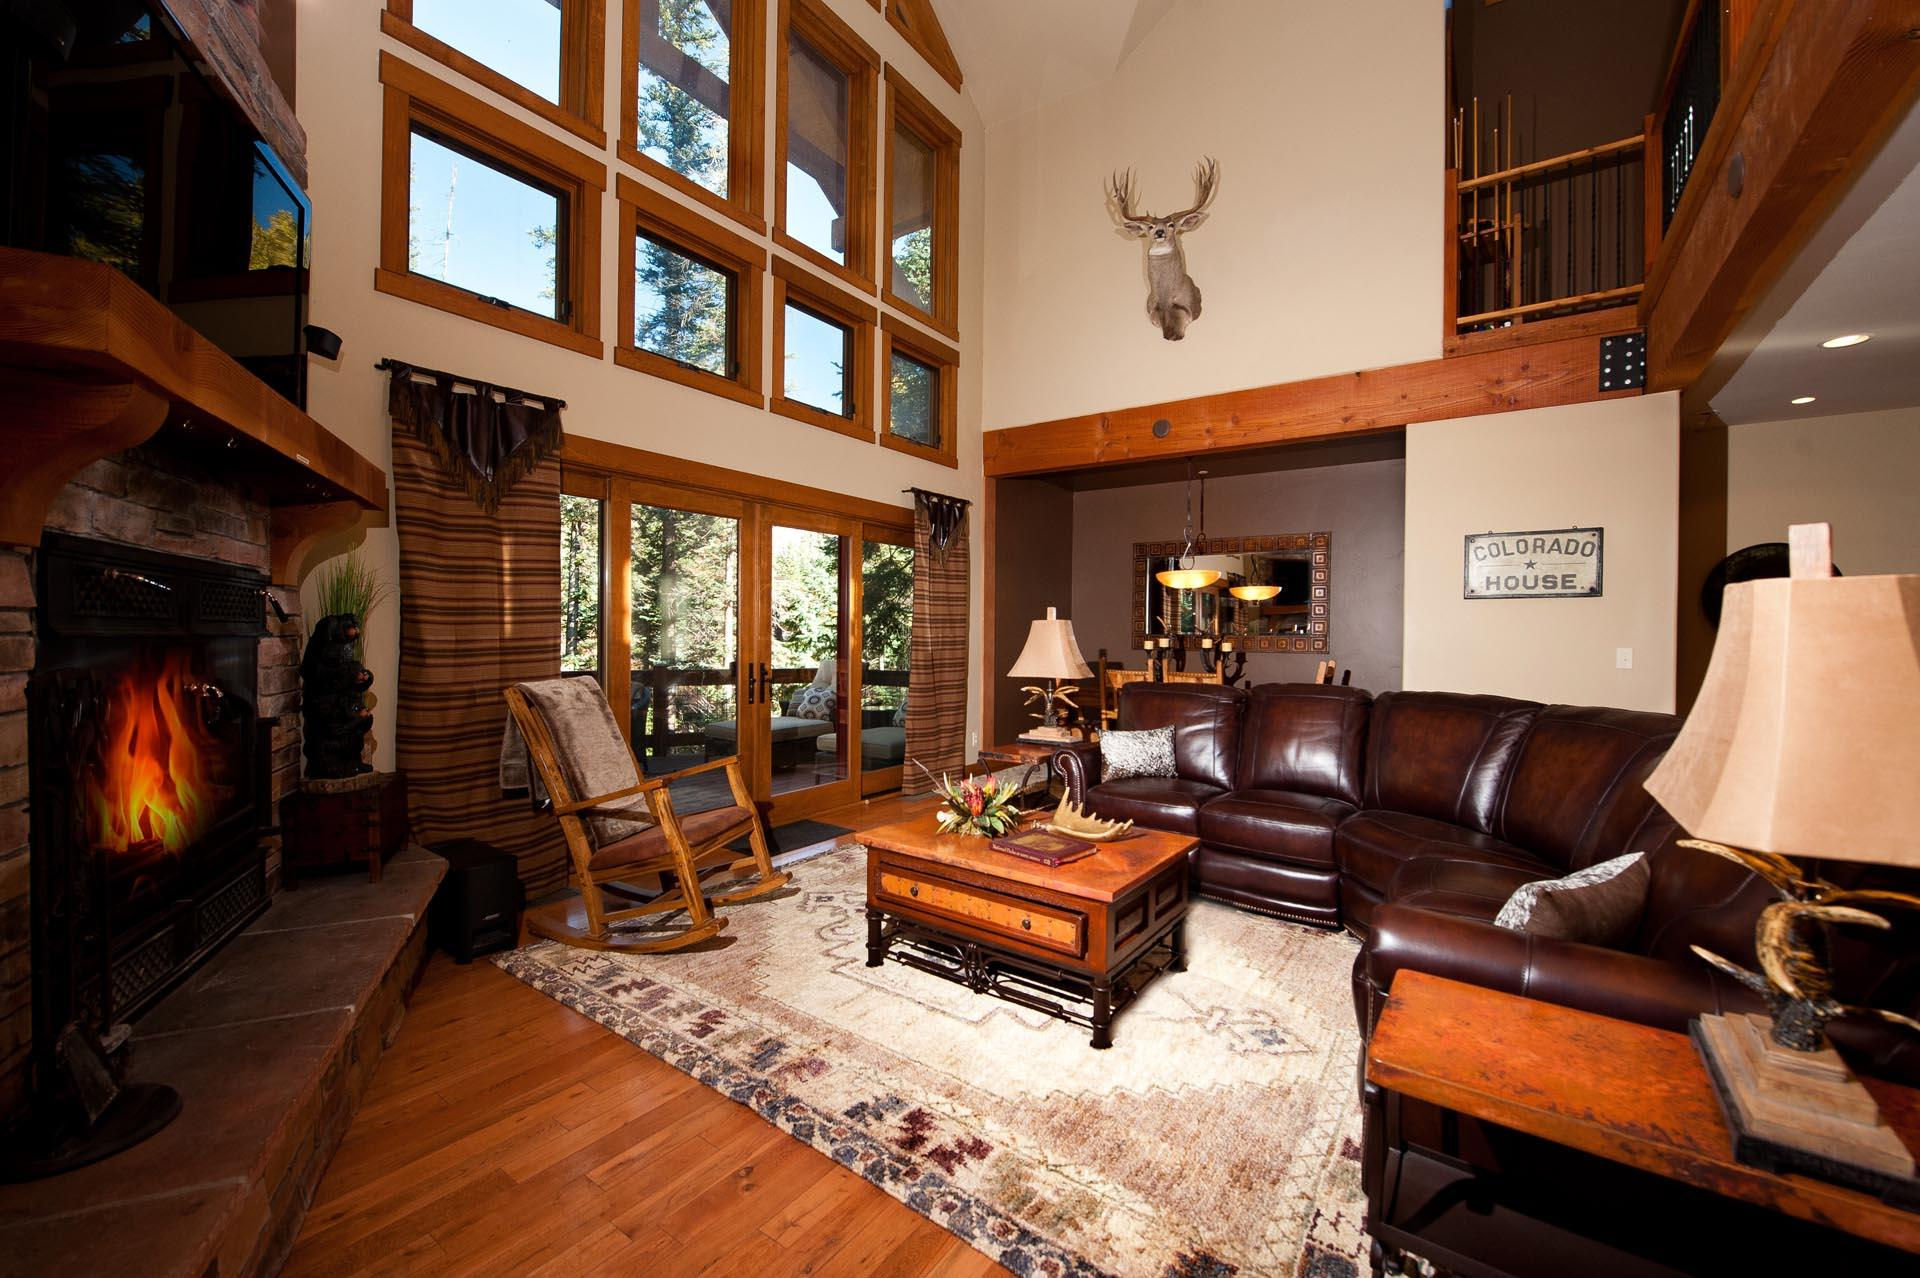 Luxury Home Across from Purgatory Ski Resort - Pool Table - Large Deck - Free Ski Shuttle